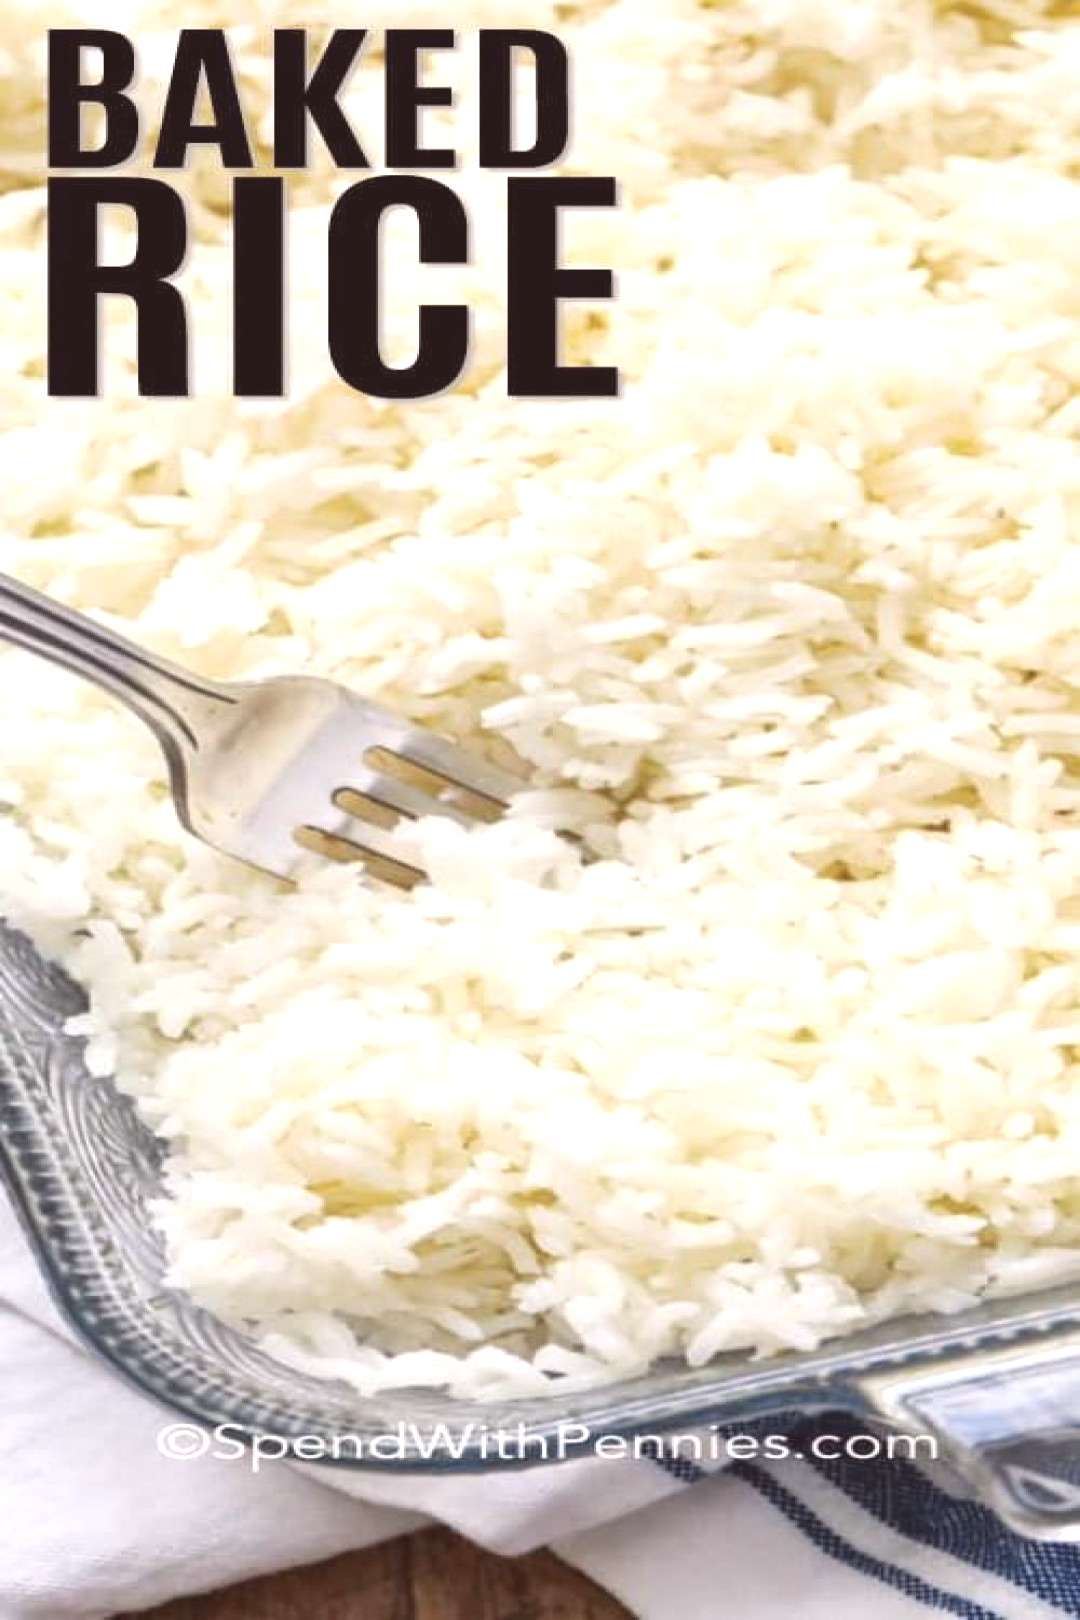 Easy Oven Baked Rice {3 ingredients!} - Spend With Pennies-#airfryerrecipes Whether cooking white r